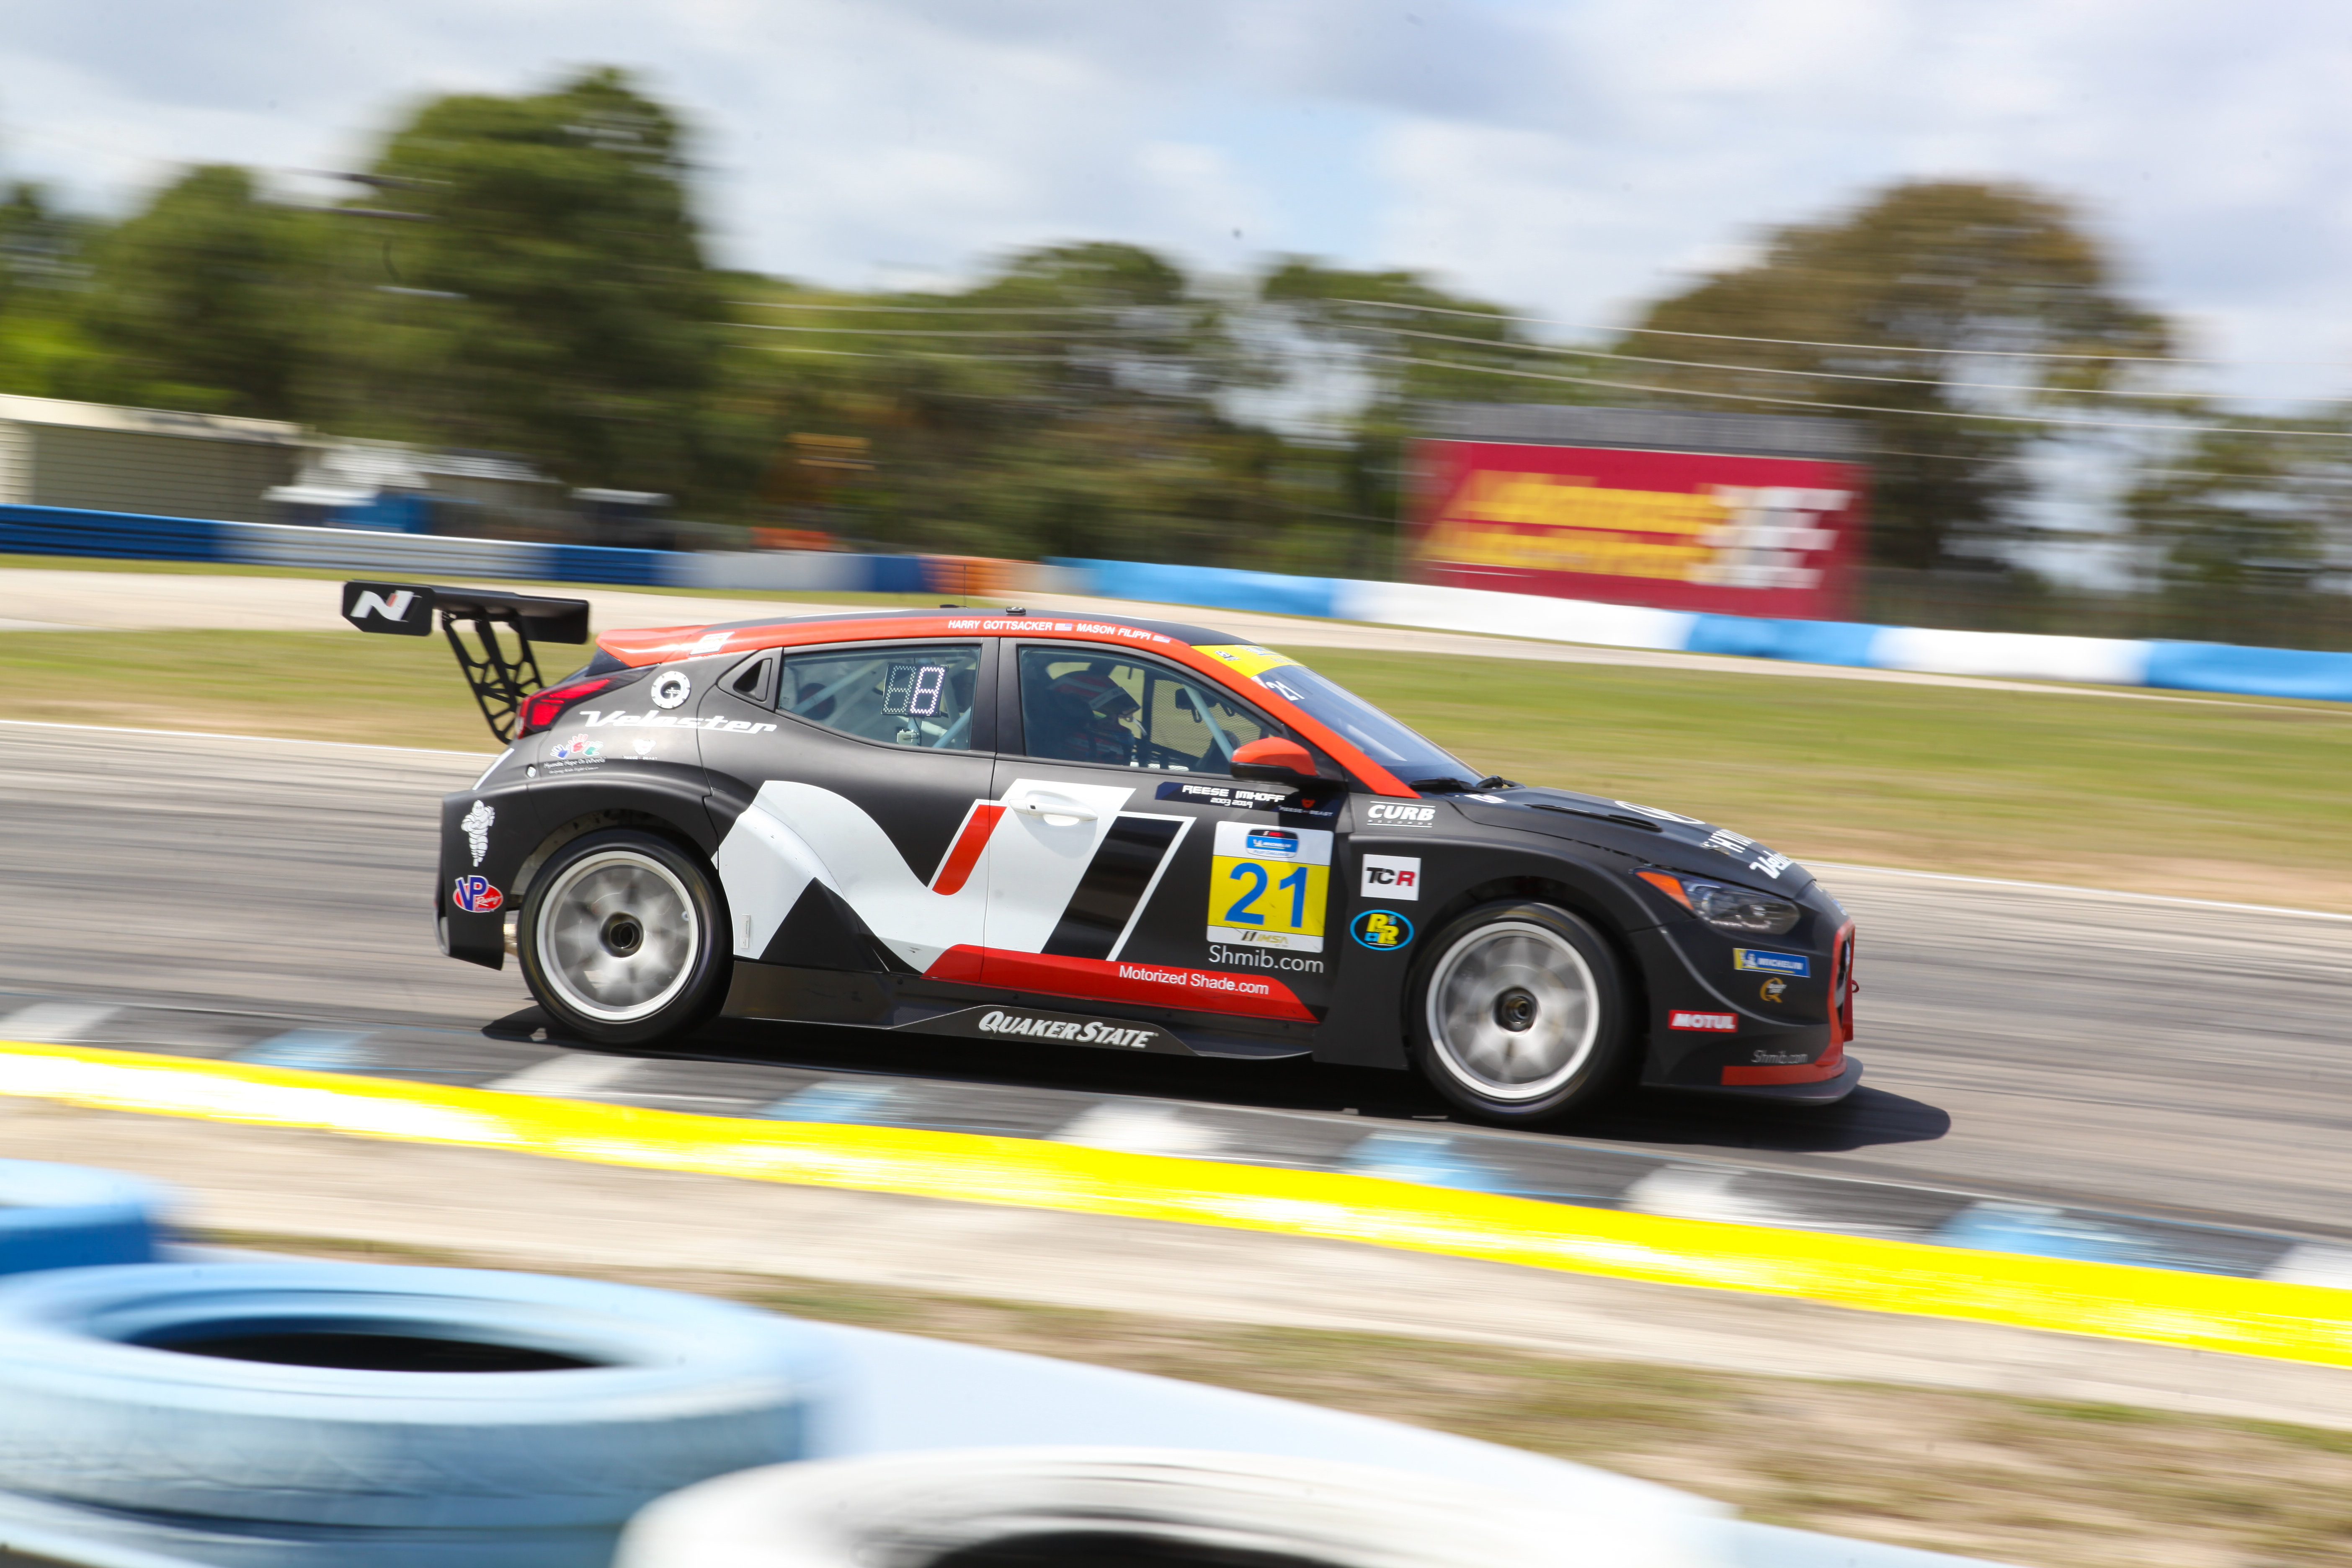 Harry Gottsacker/Mason Filippi - Veloster N TCR - Sebring International Raceway